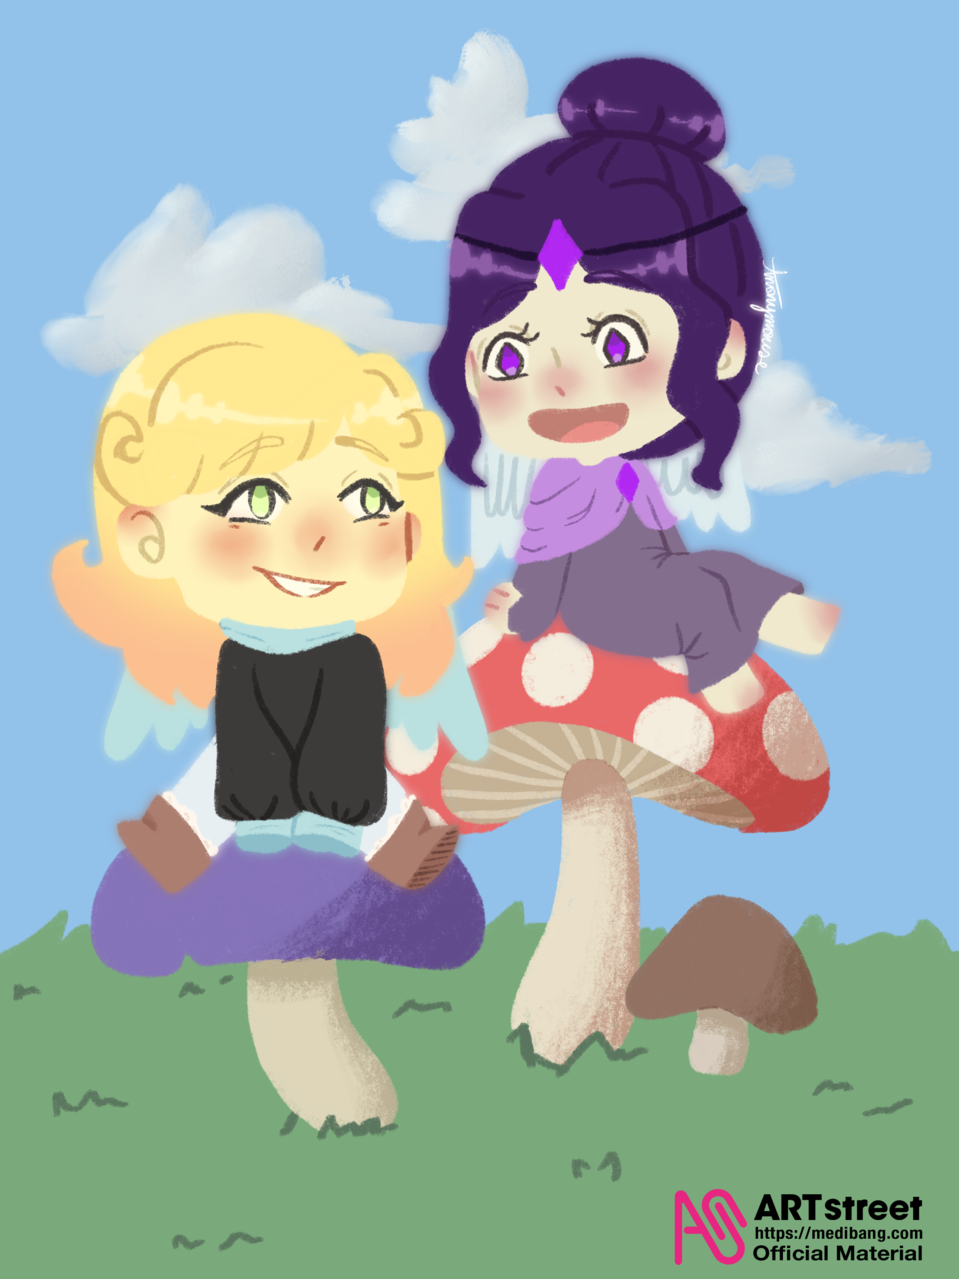 mushroom gorls v1  Illust of AnonymouseSaysHoooi tracedrawing4th Trace&Draw【Official】 adopted mushrooms